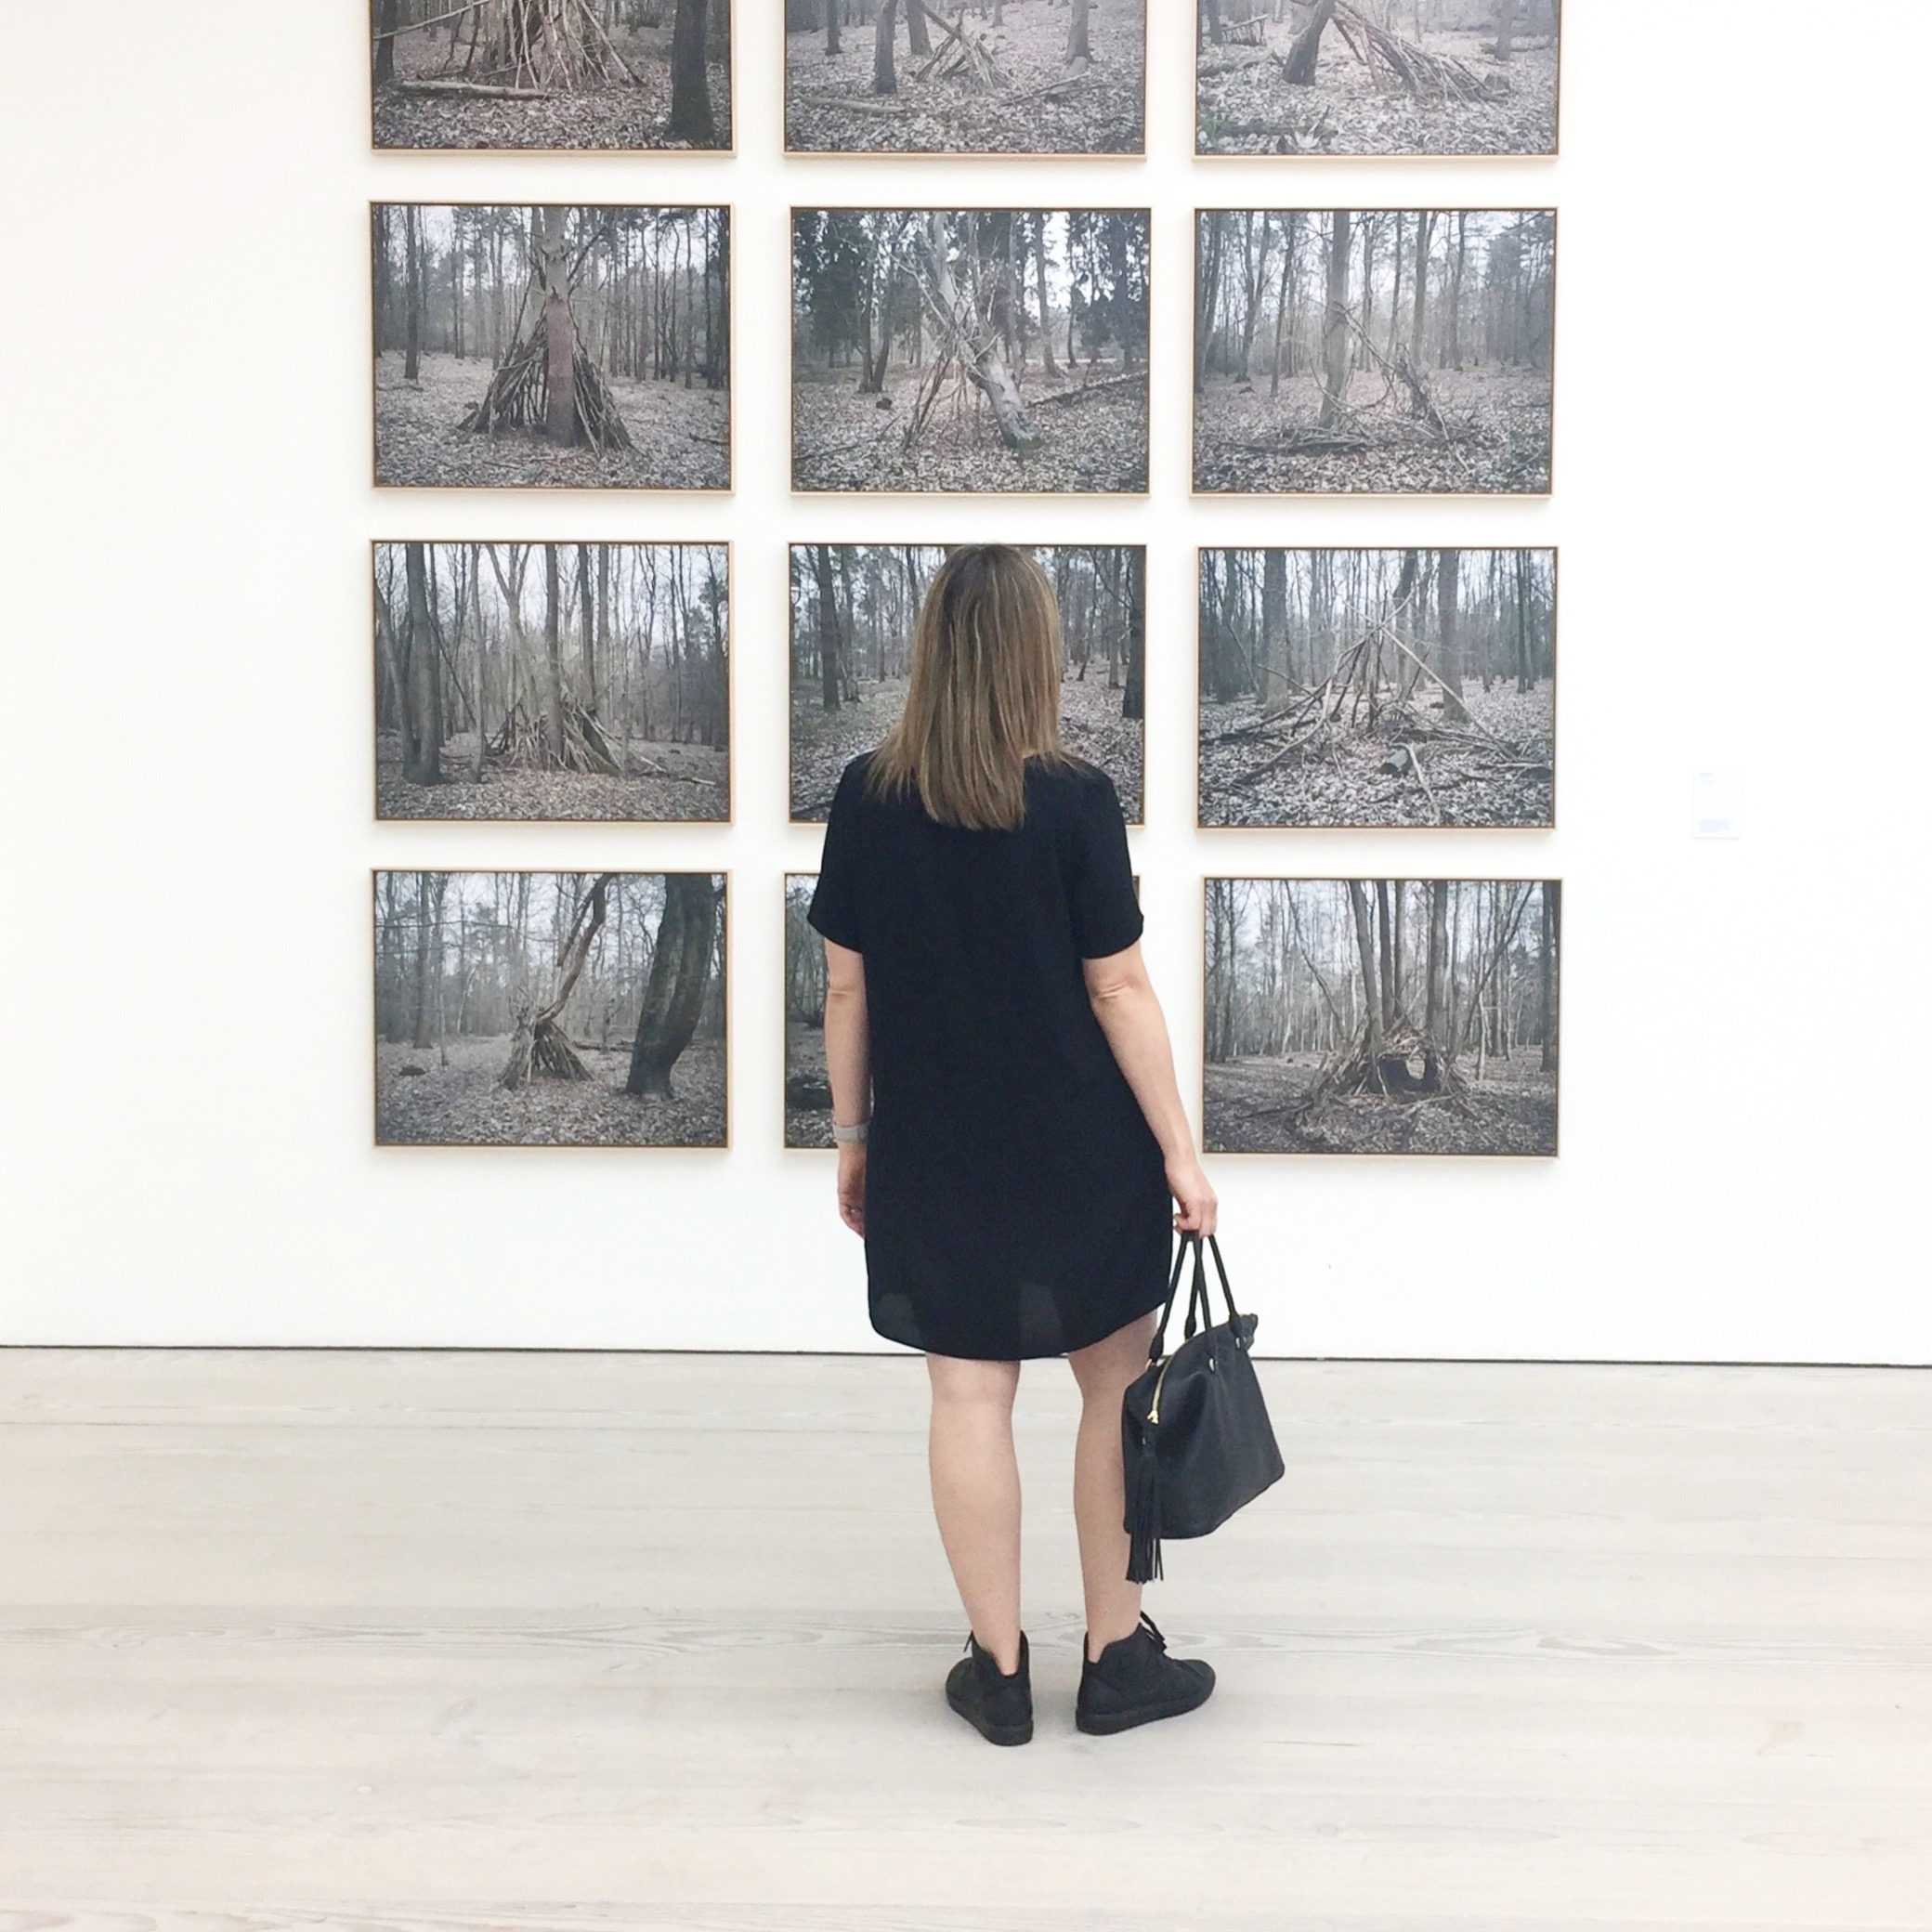 During my last trip to Saatchi Gallery